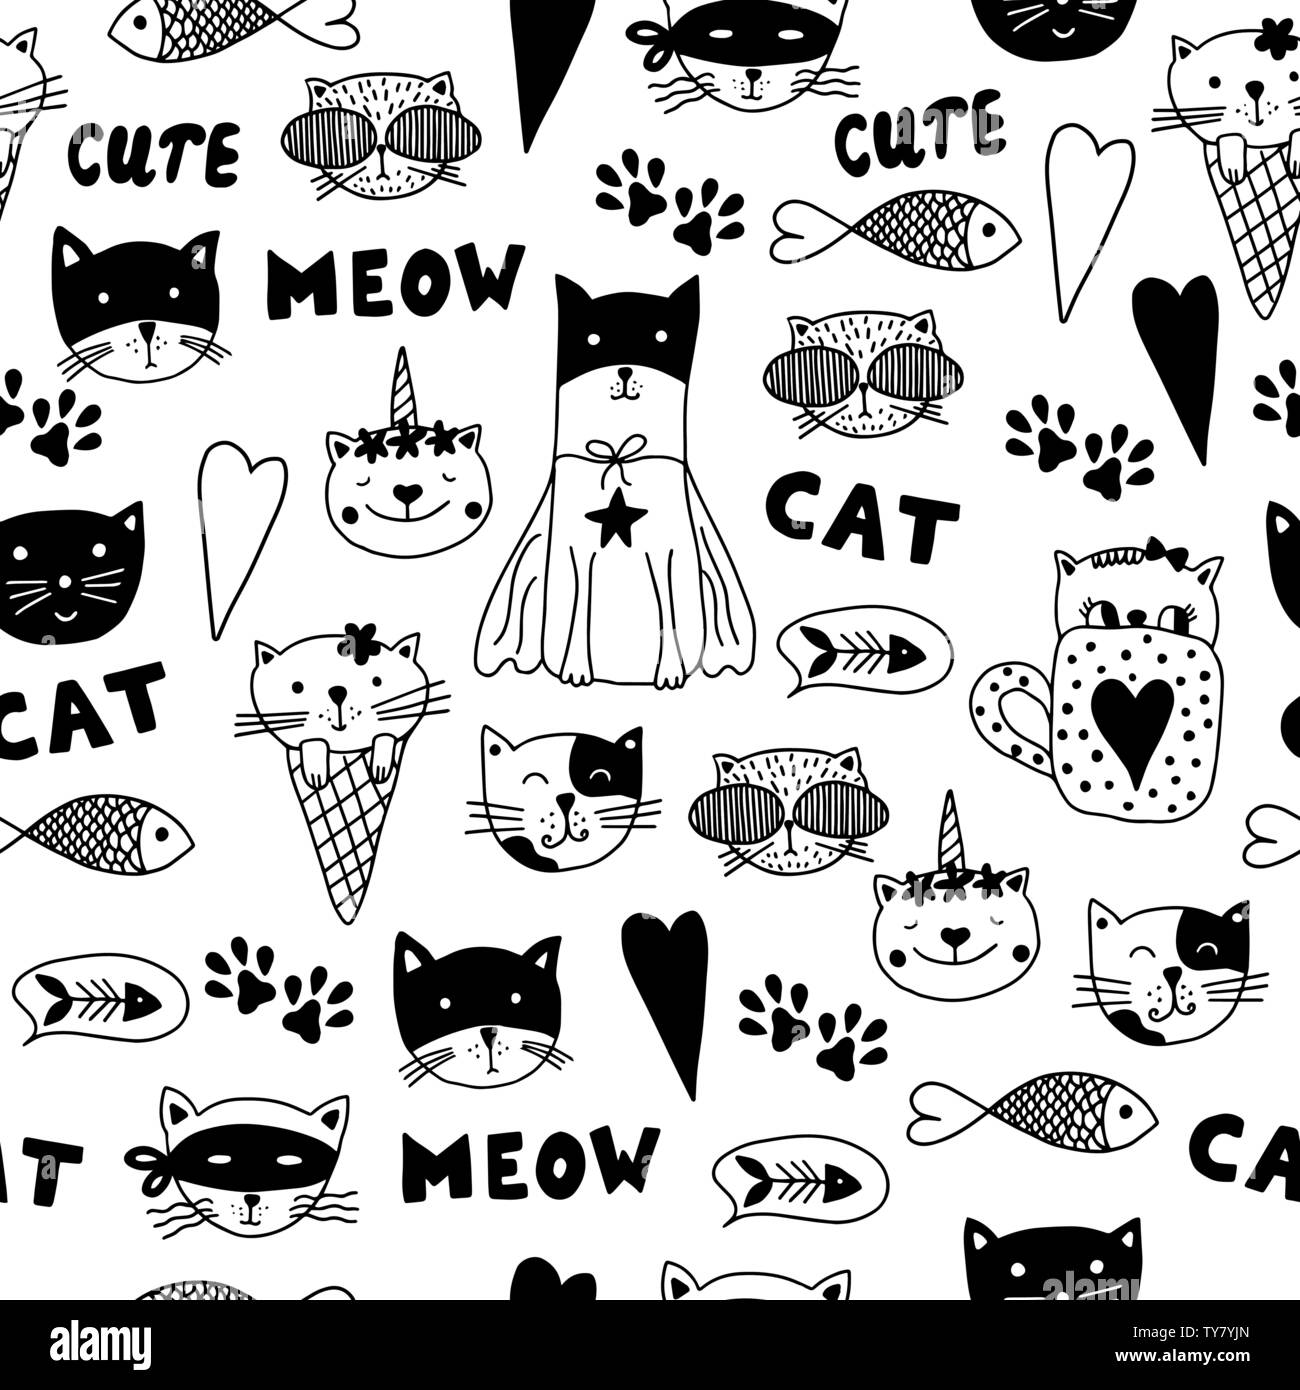 doodle cats black and white hand drawn